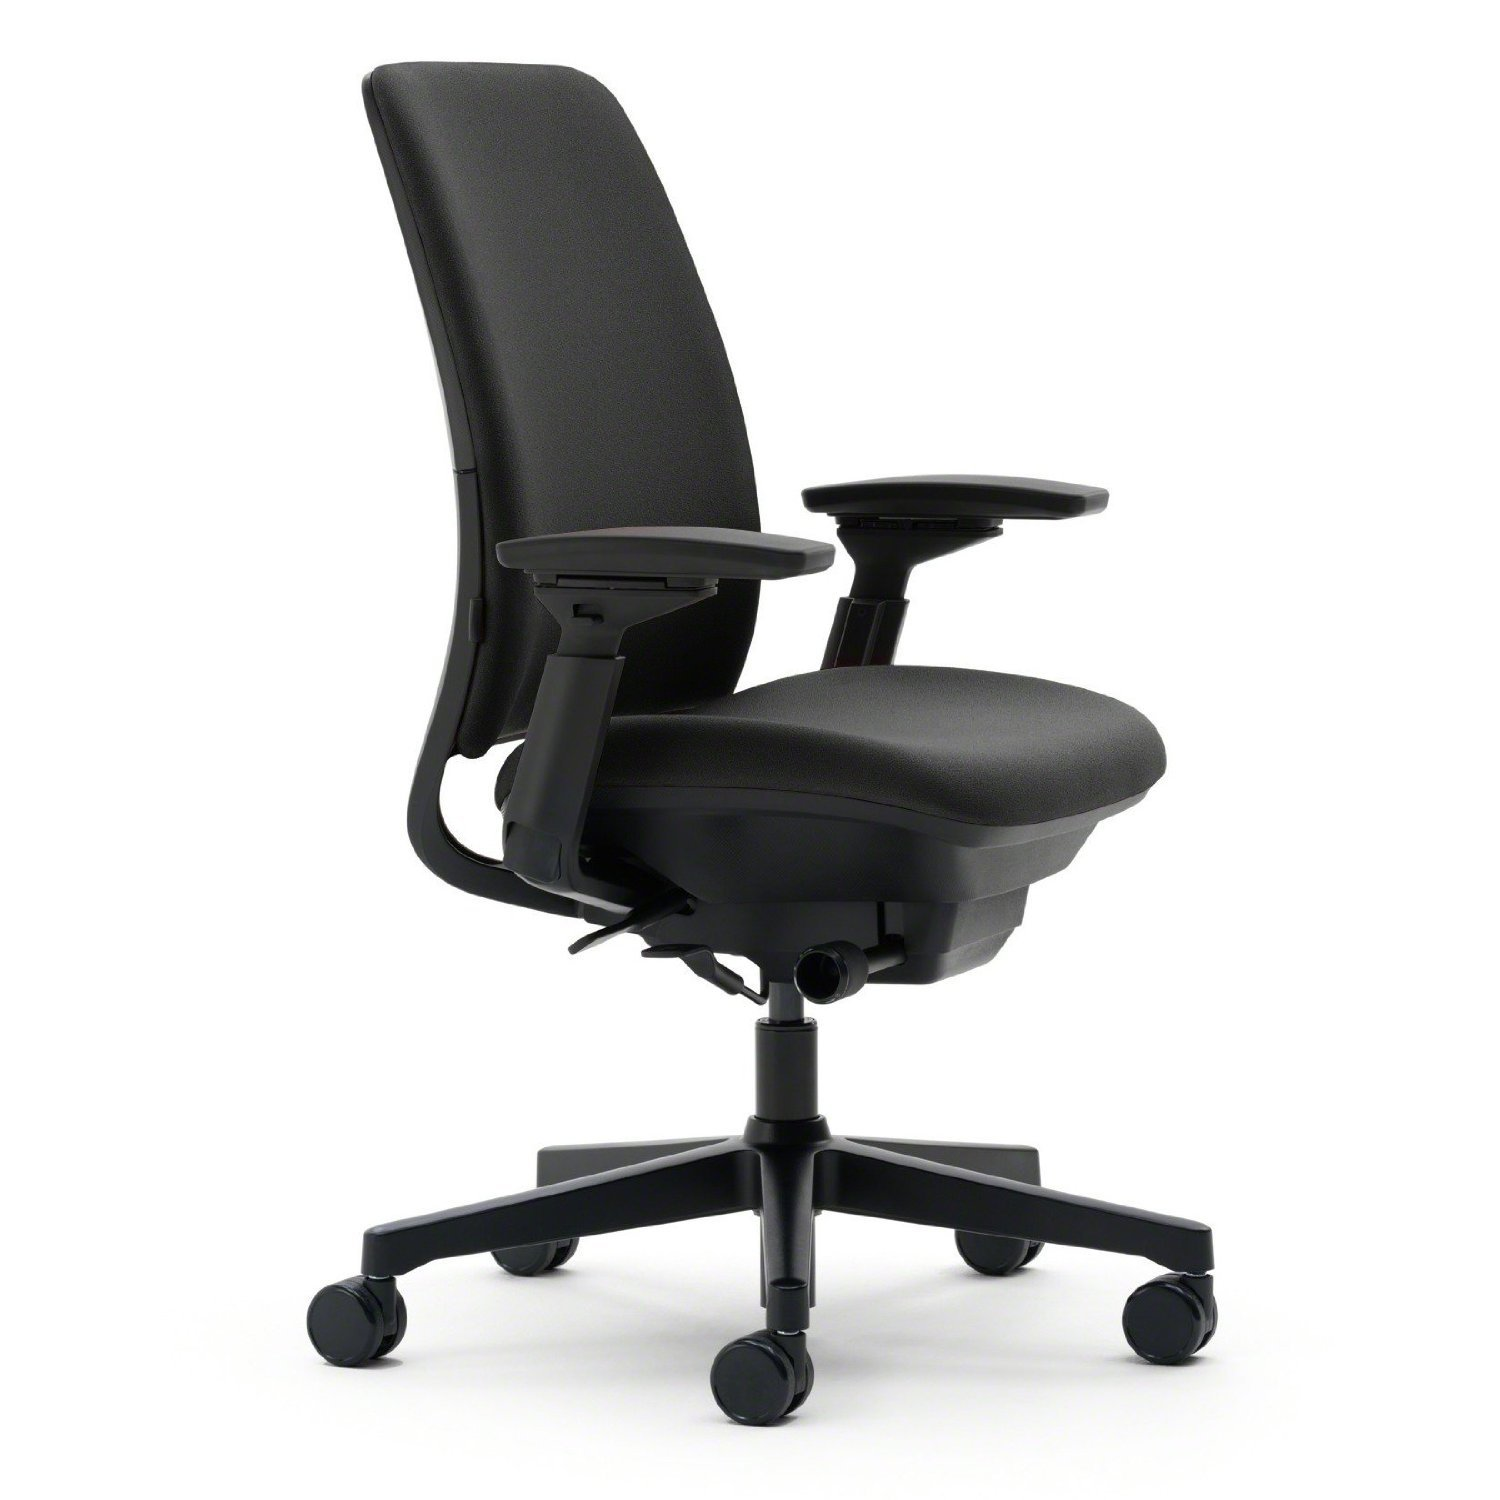 Steelcase Amia Chair Black Friday Deals 2021